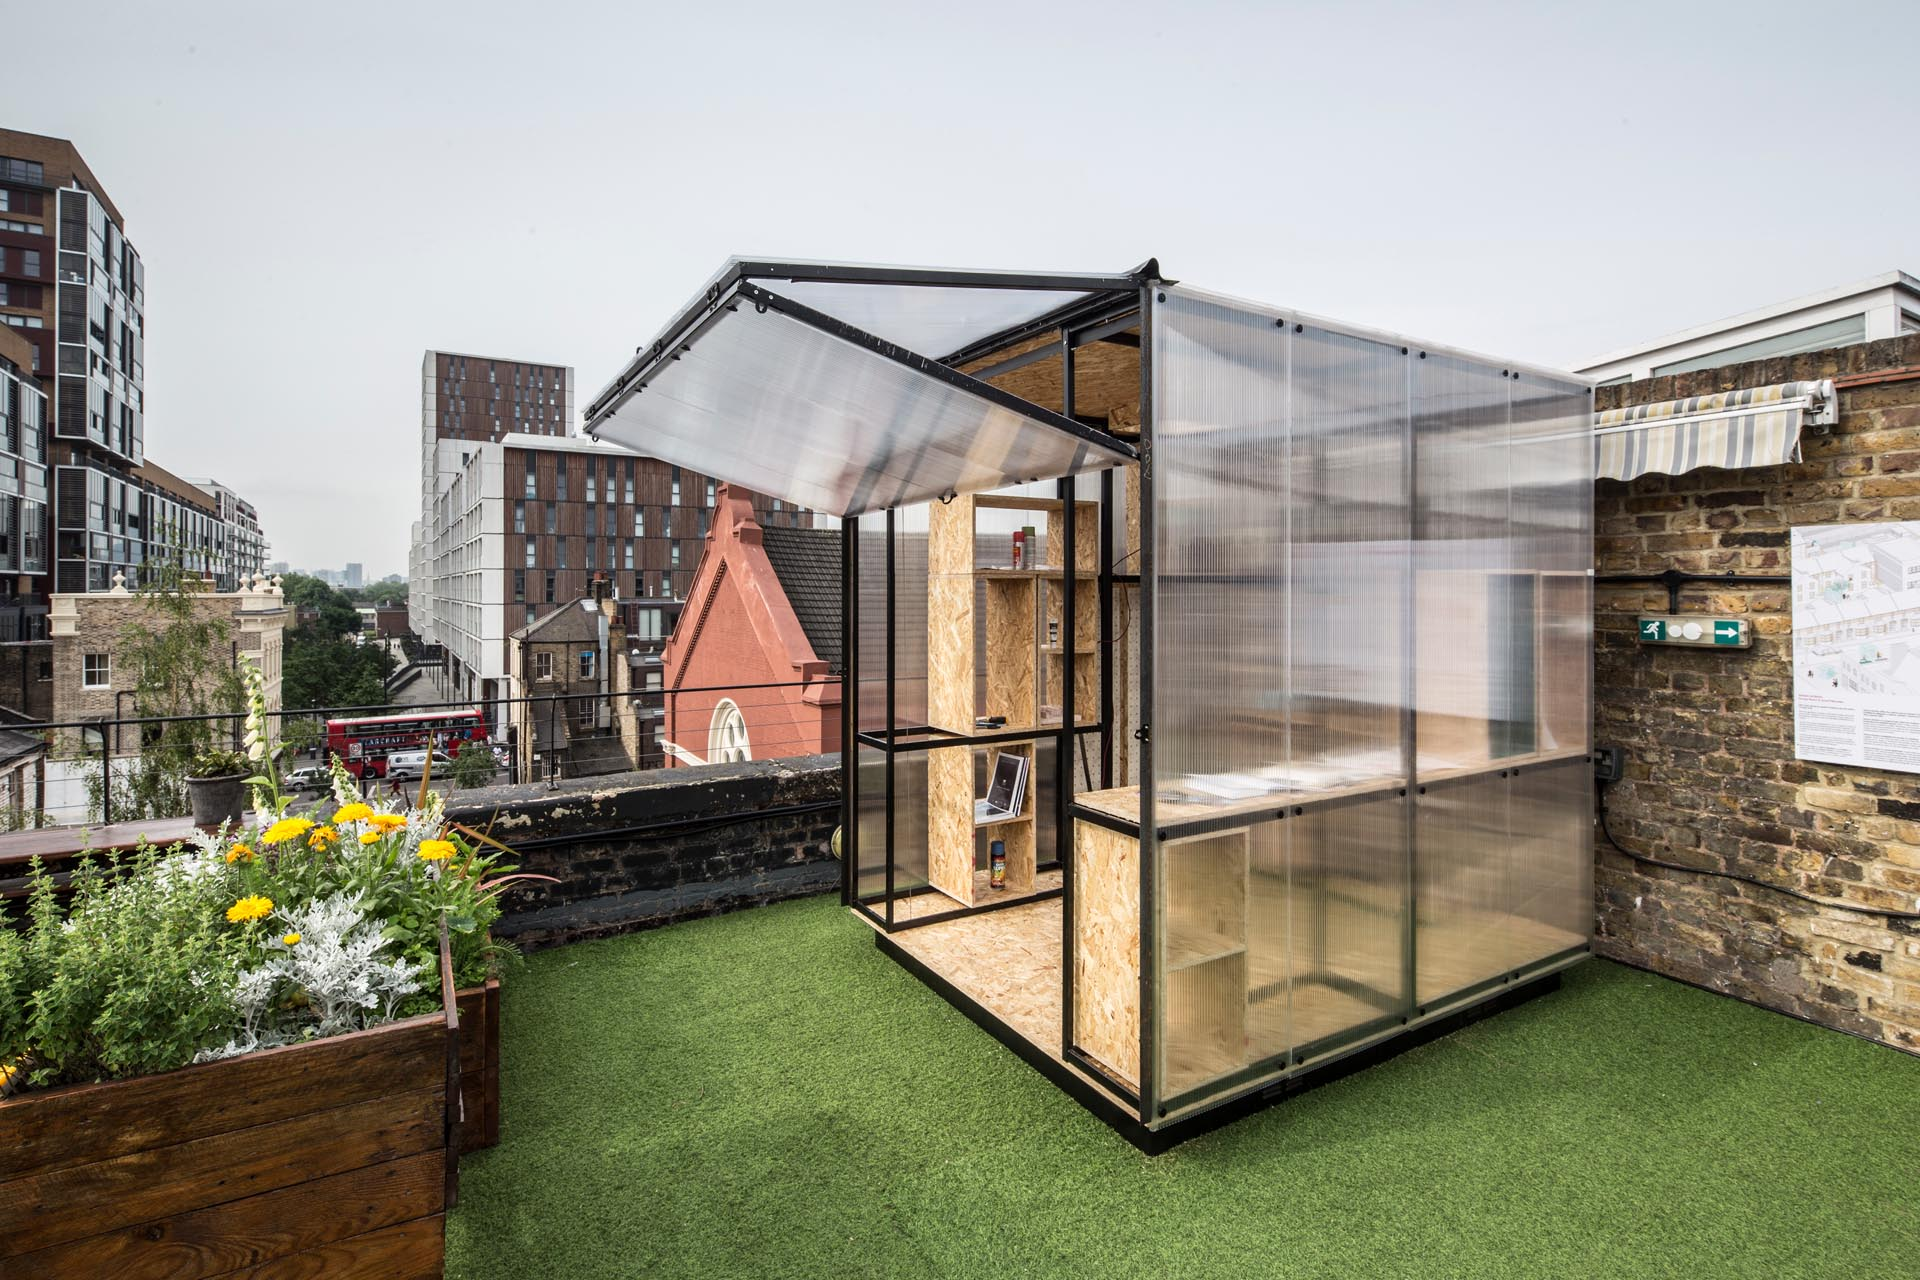 Translucent Walls Allow Light Into This Small Building Designed To Be Used As A Home Office Or Workshop